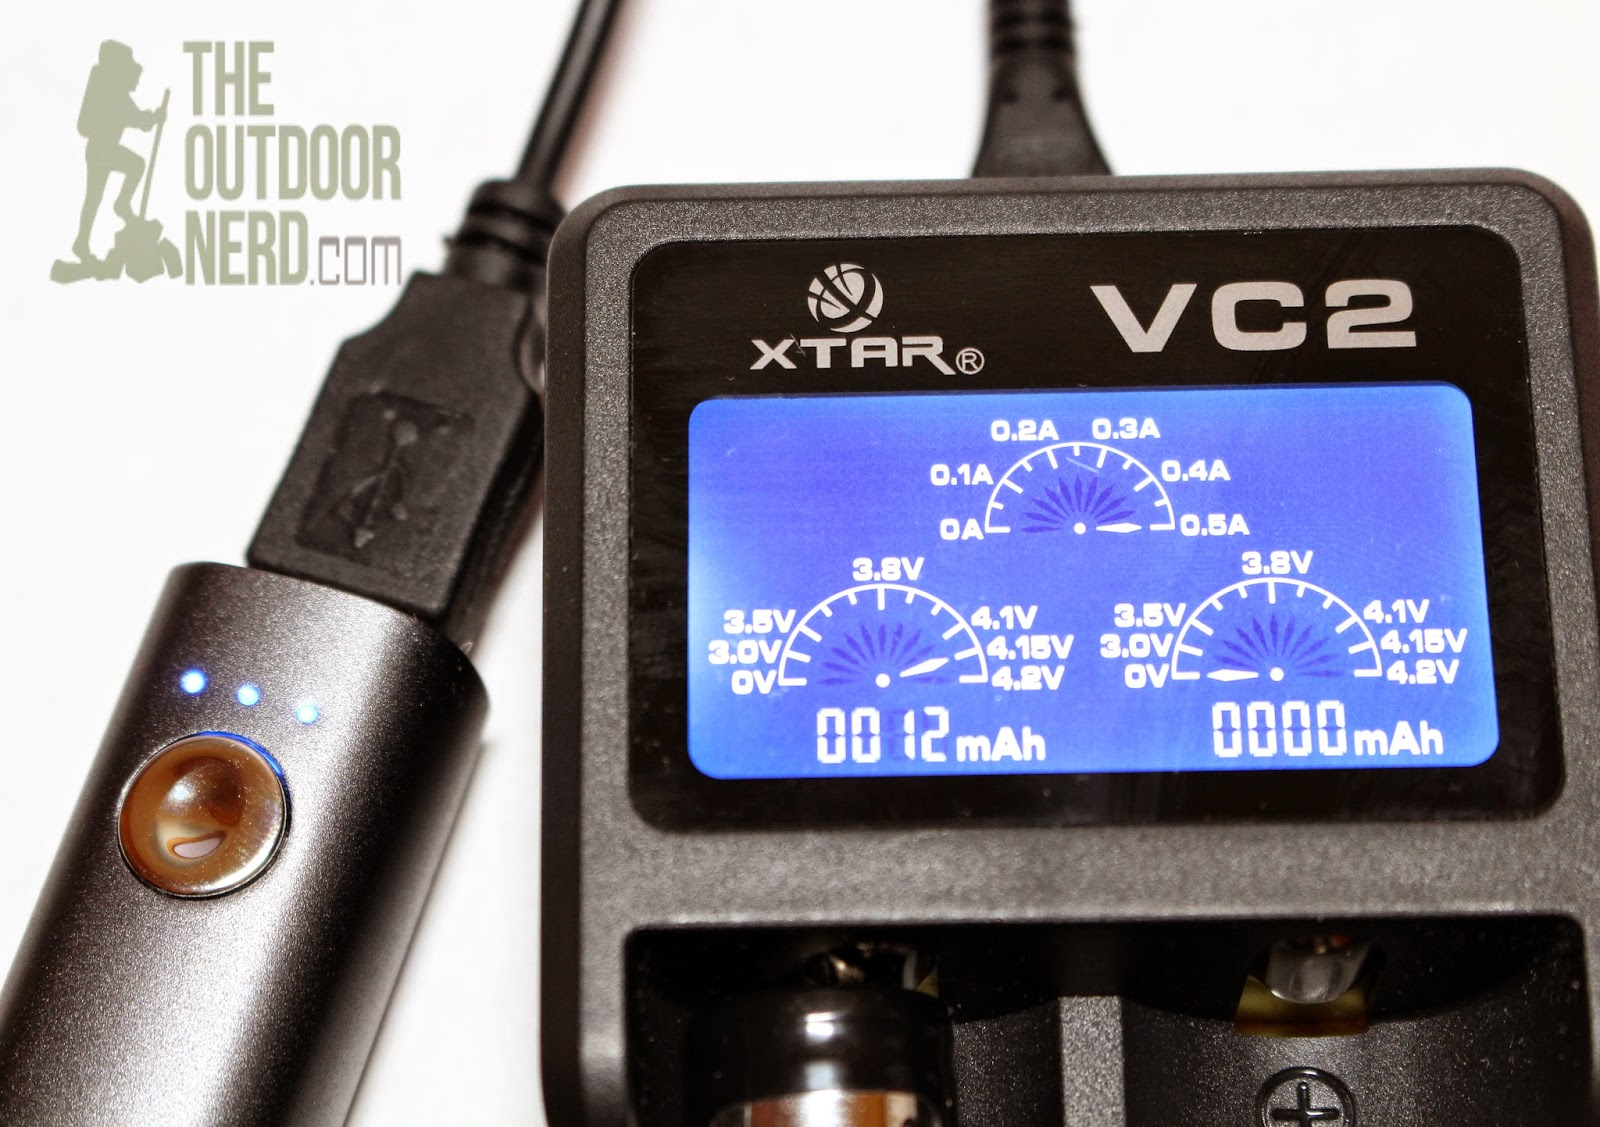 XTAR VC2 Lithium-Ion USB Charger - Product View